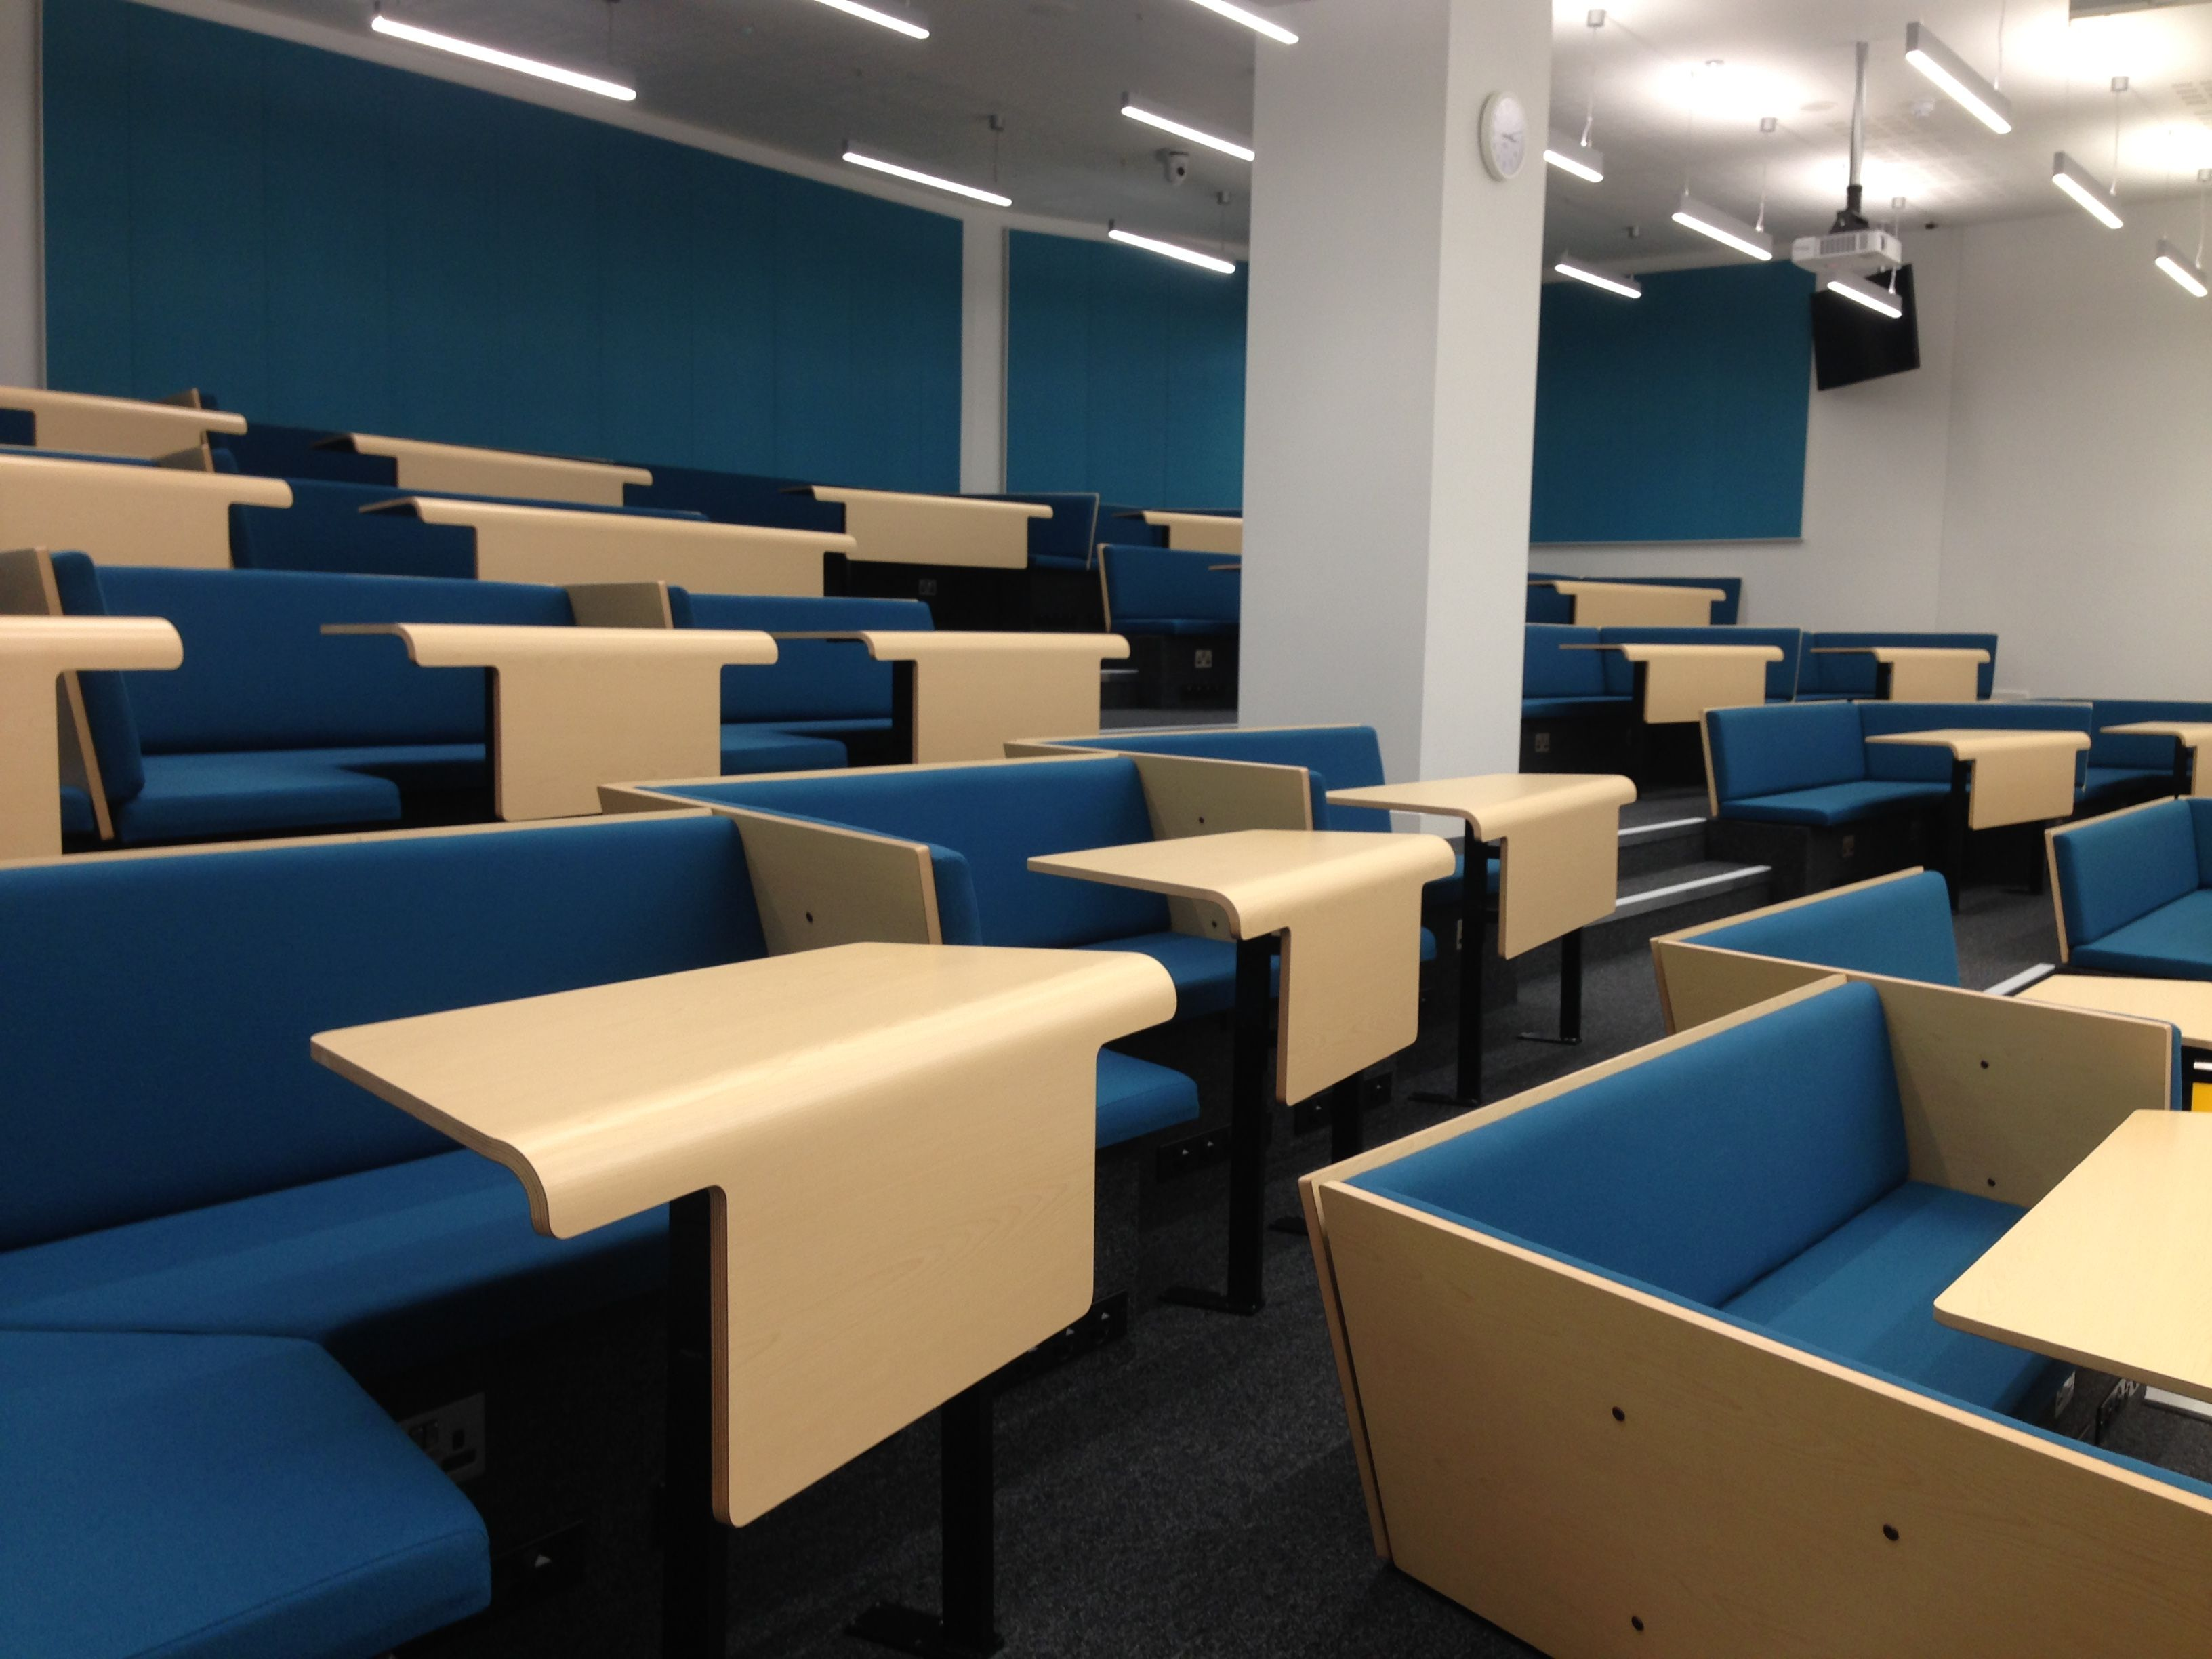 Cluster seating City University London Education spaces